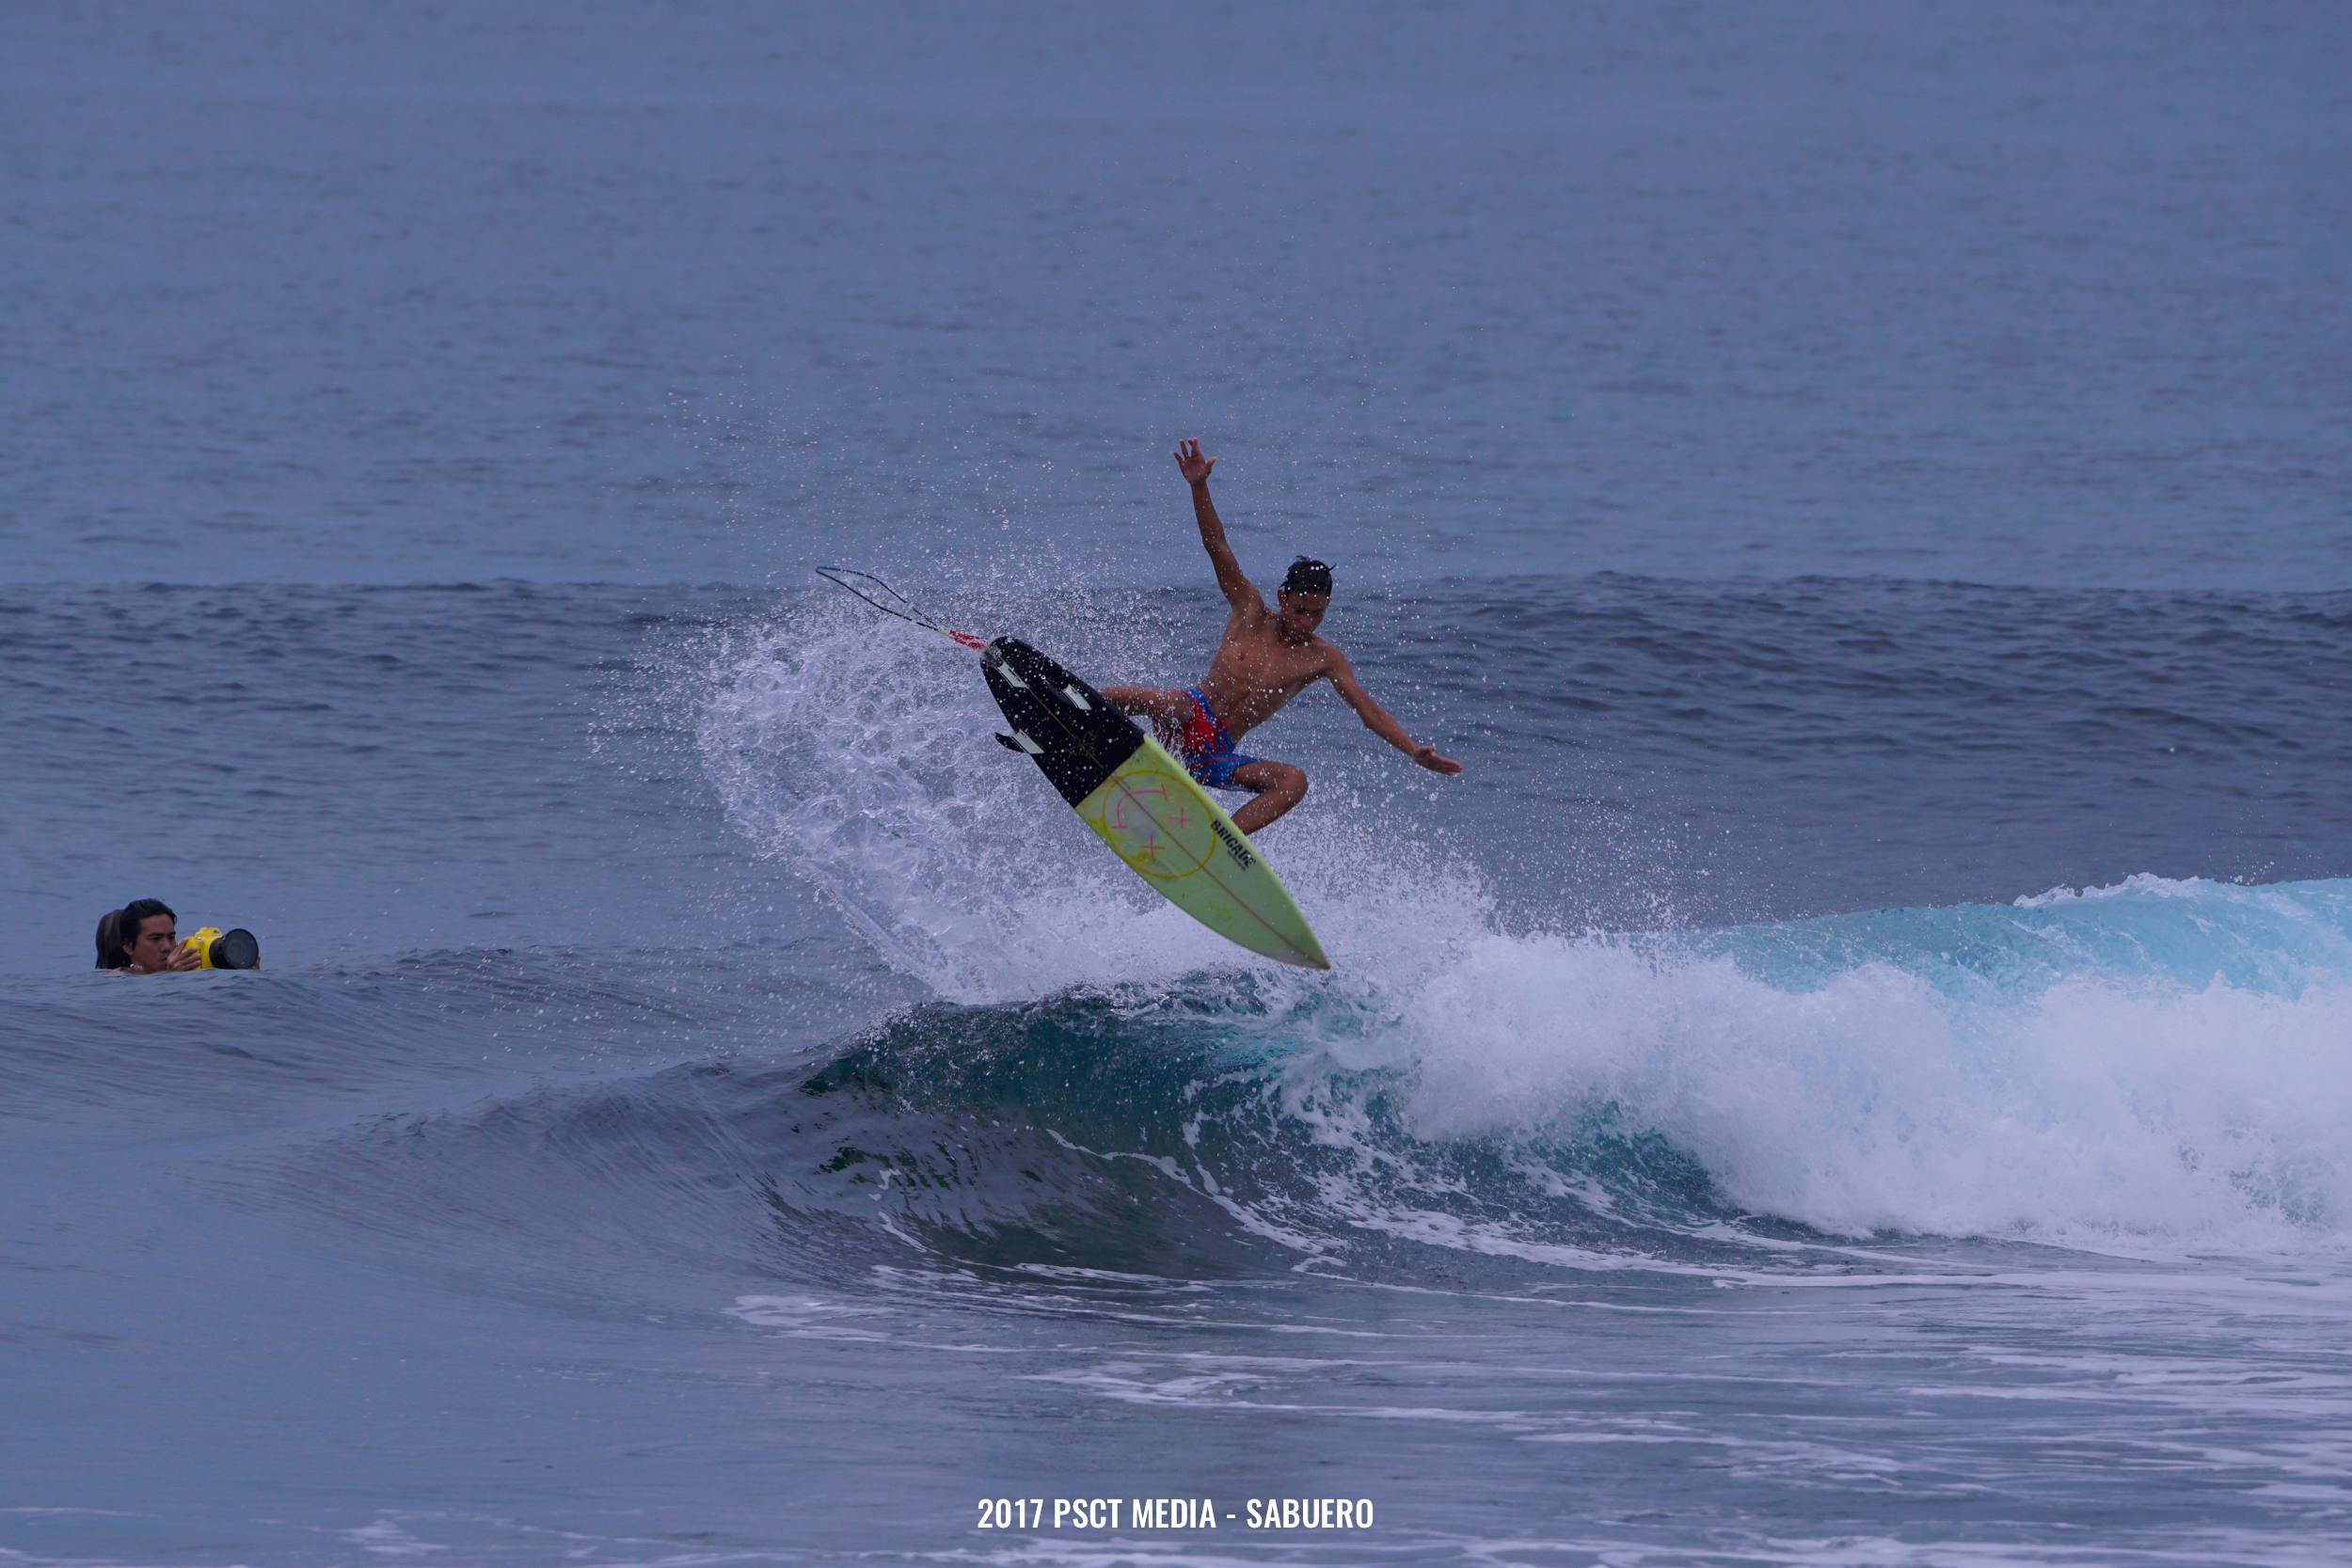 Despite the swell of 1 to 2 foot waves this surfer still pulls tricks. Photo by Gaps Sabuero